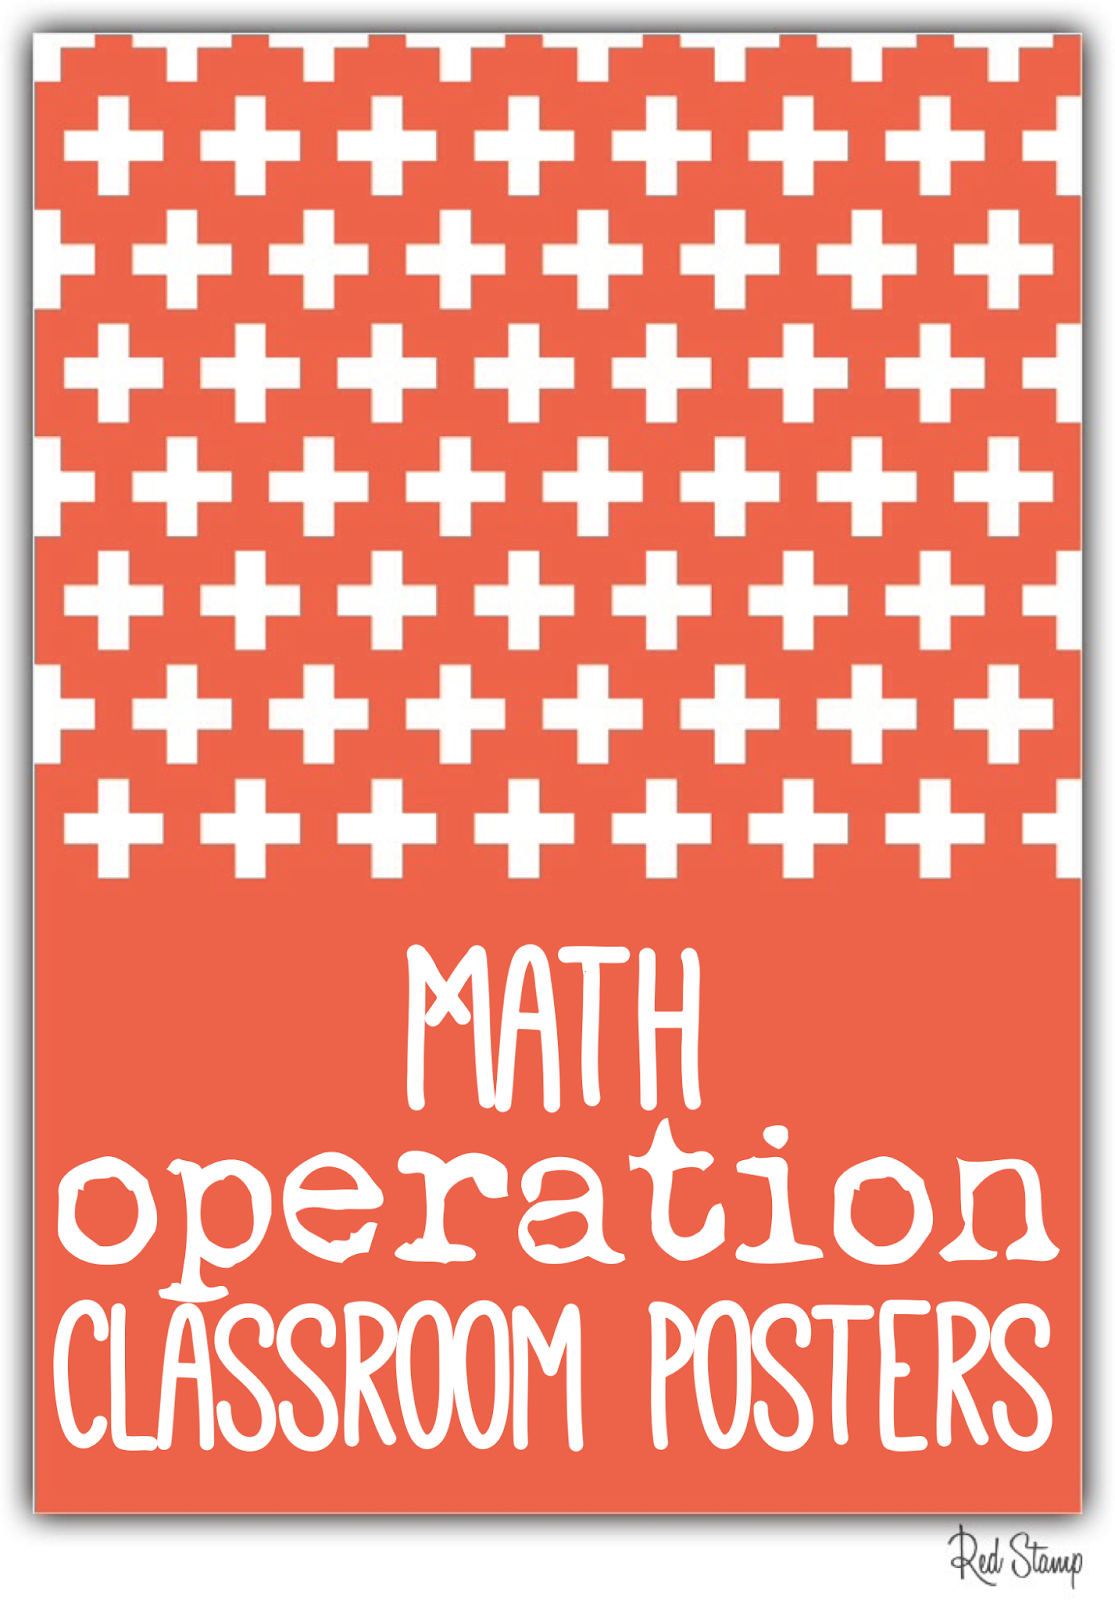 http://www.teachersnotebook.com/product/mnschenk/operations-signs